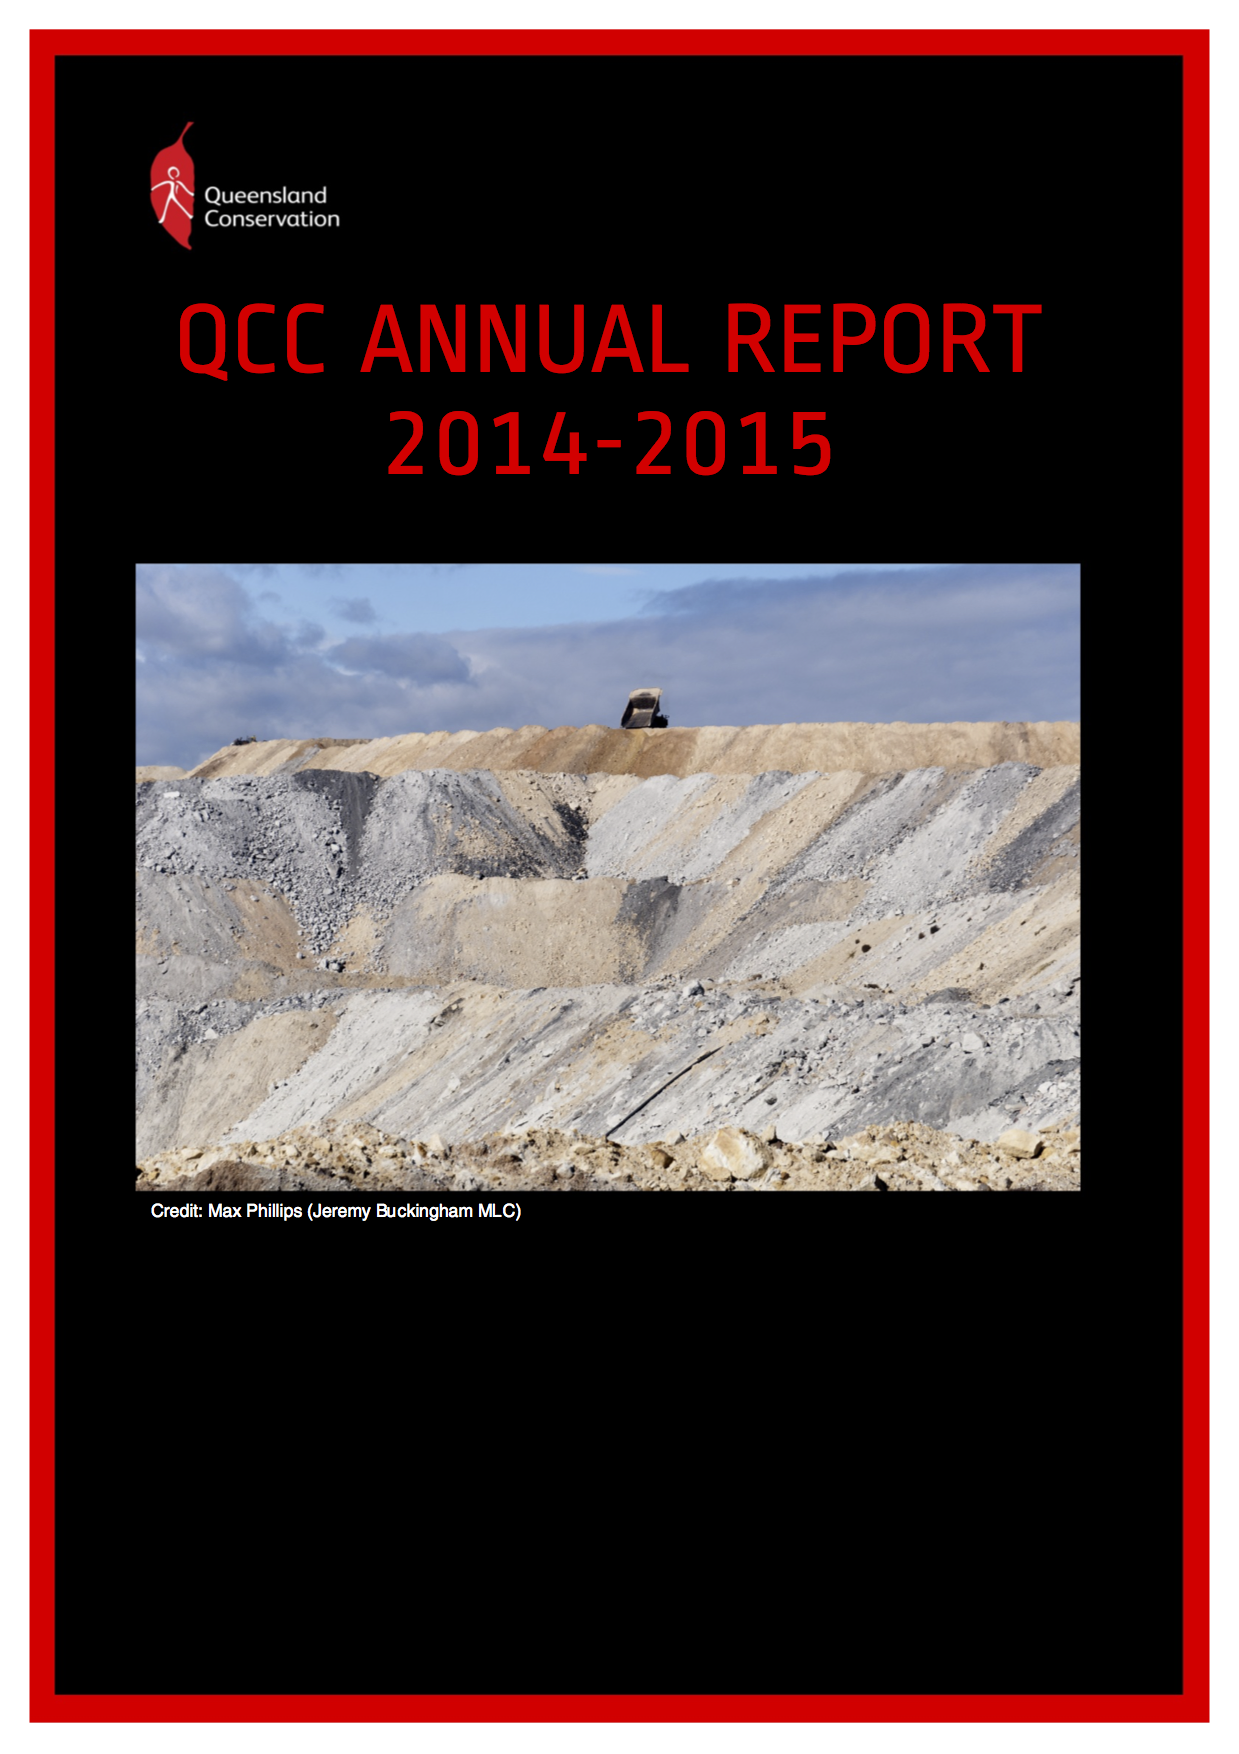 2015_Annual_Report_image.png